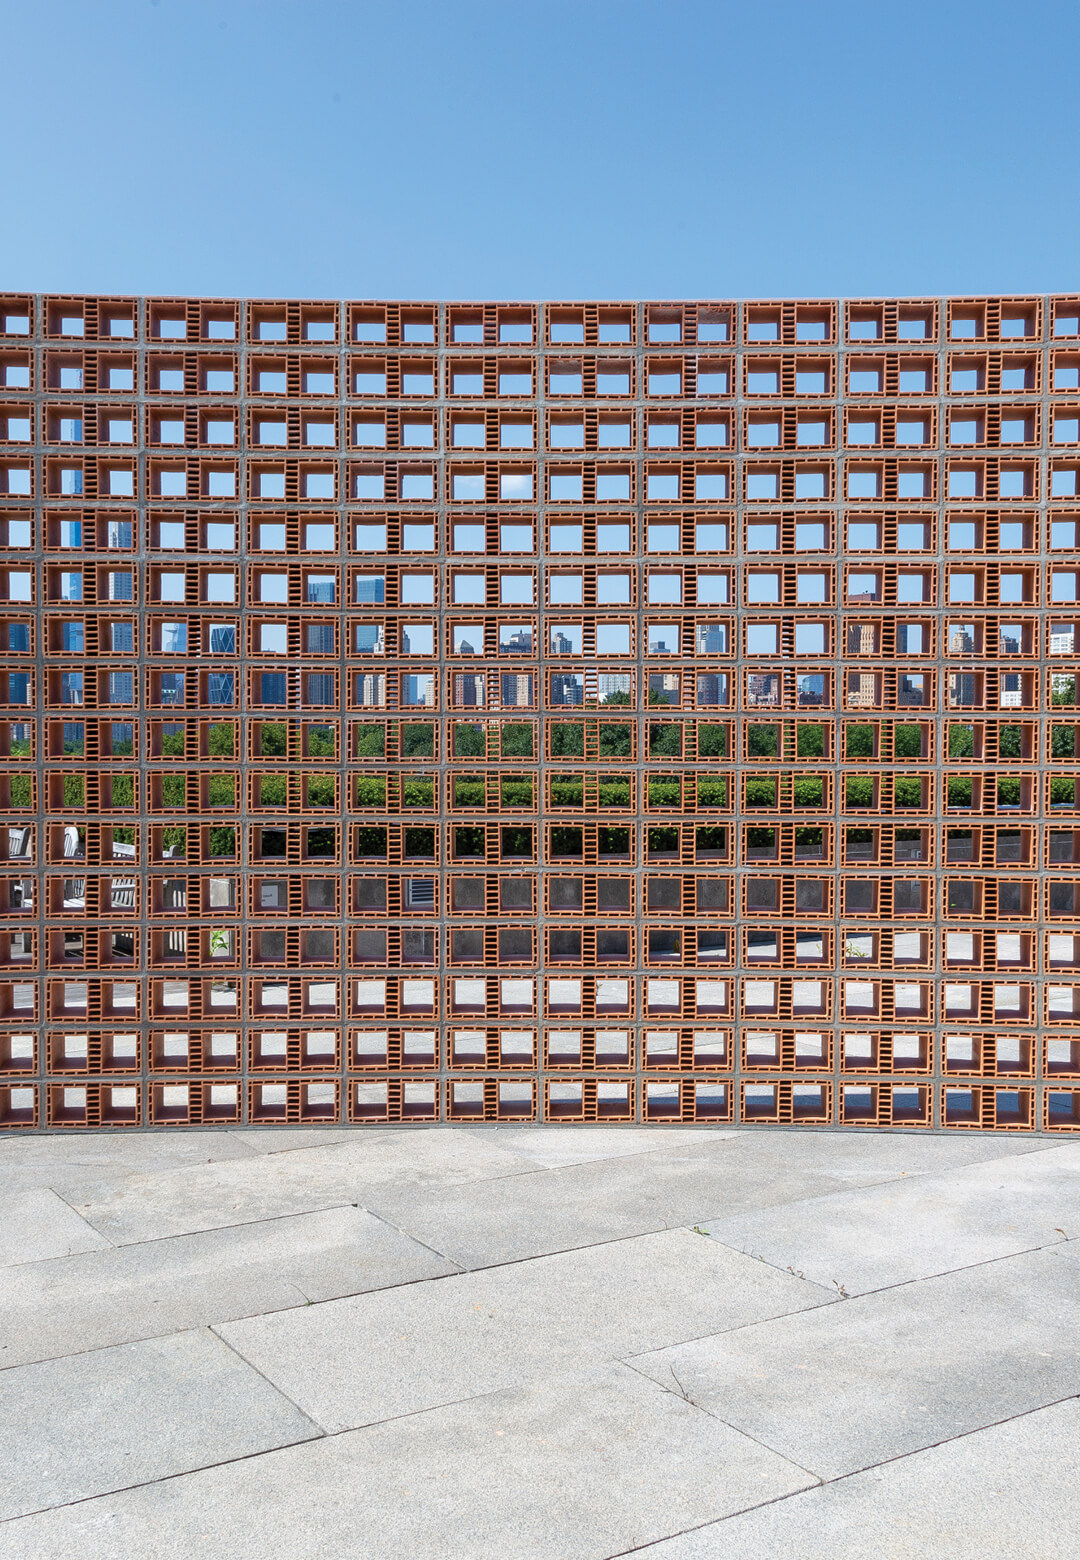 Héctor Zamora's installation Lattice Detour transforms the Met's roof with a poetic wall | Lattice Detour | Héctor Zamora | STIRworld